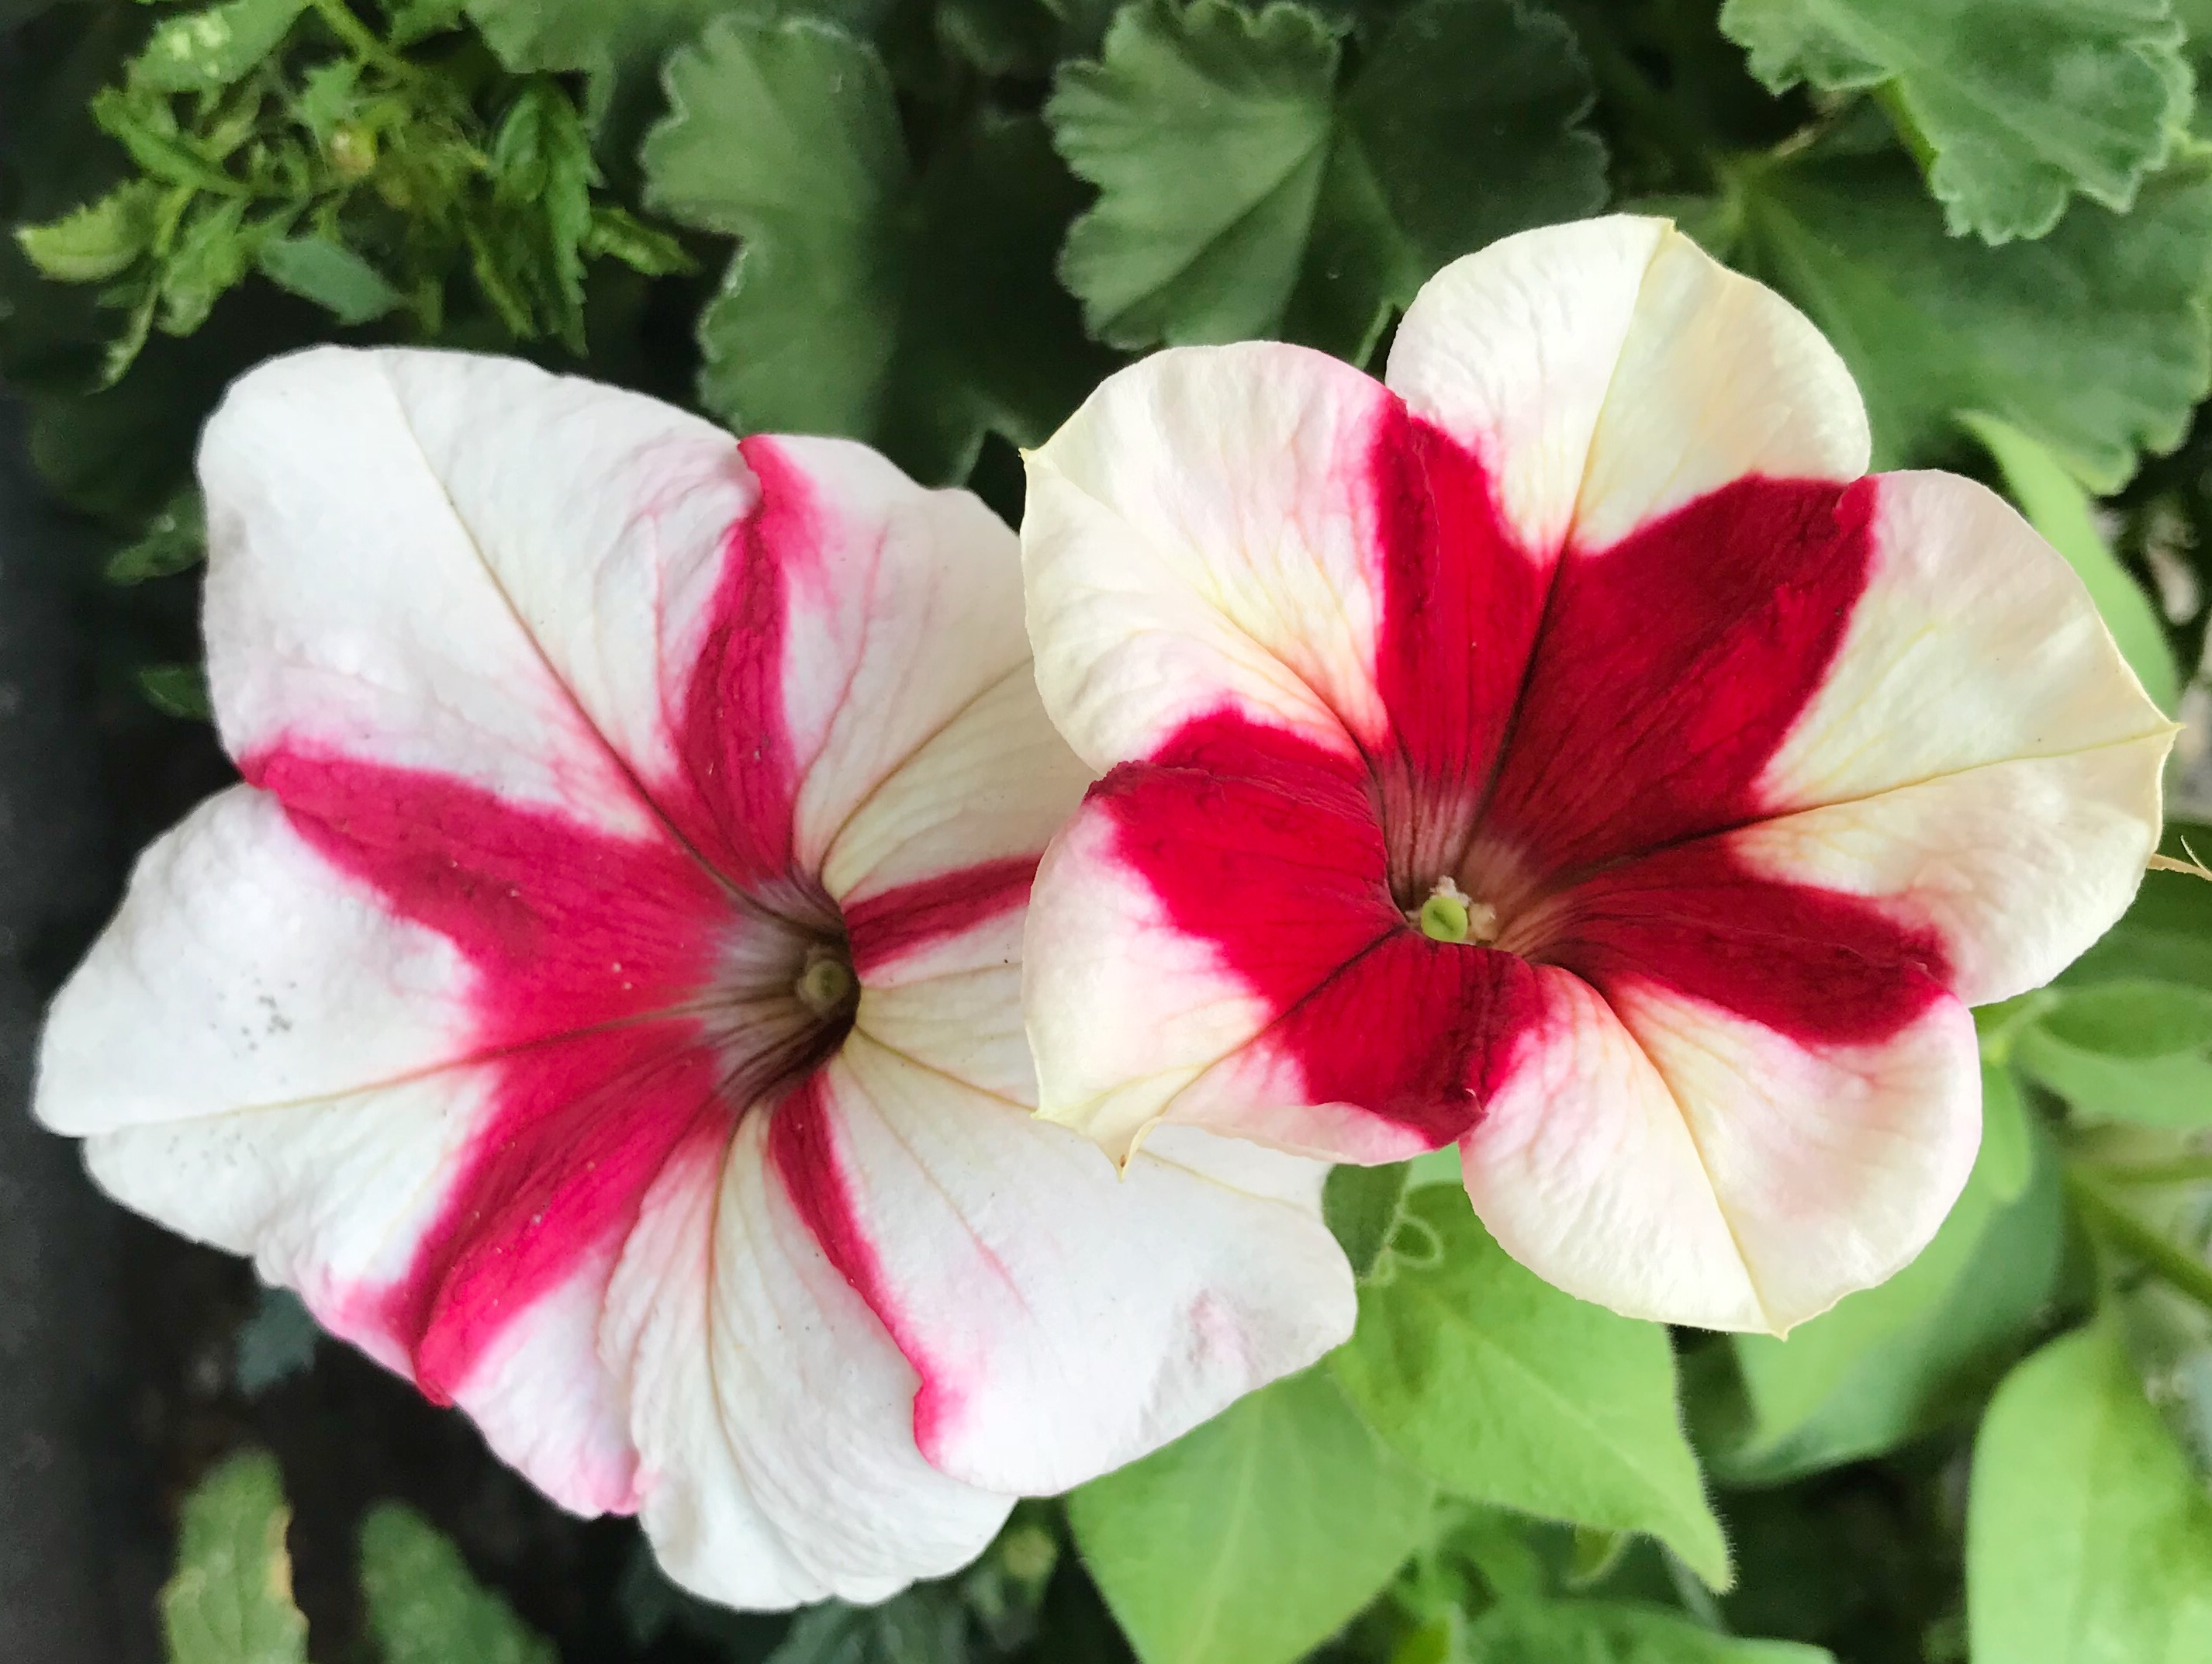 Red and white petunias